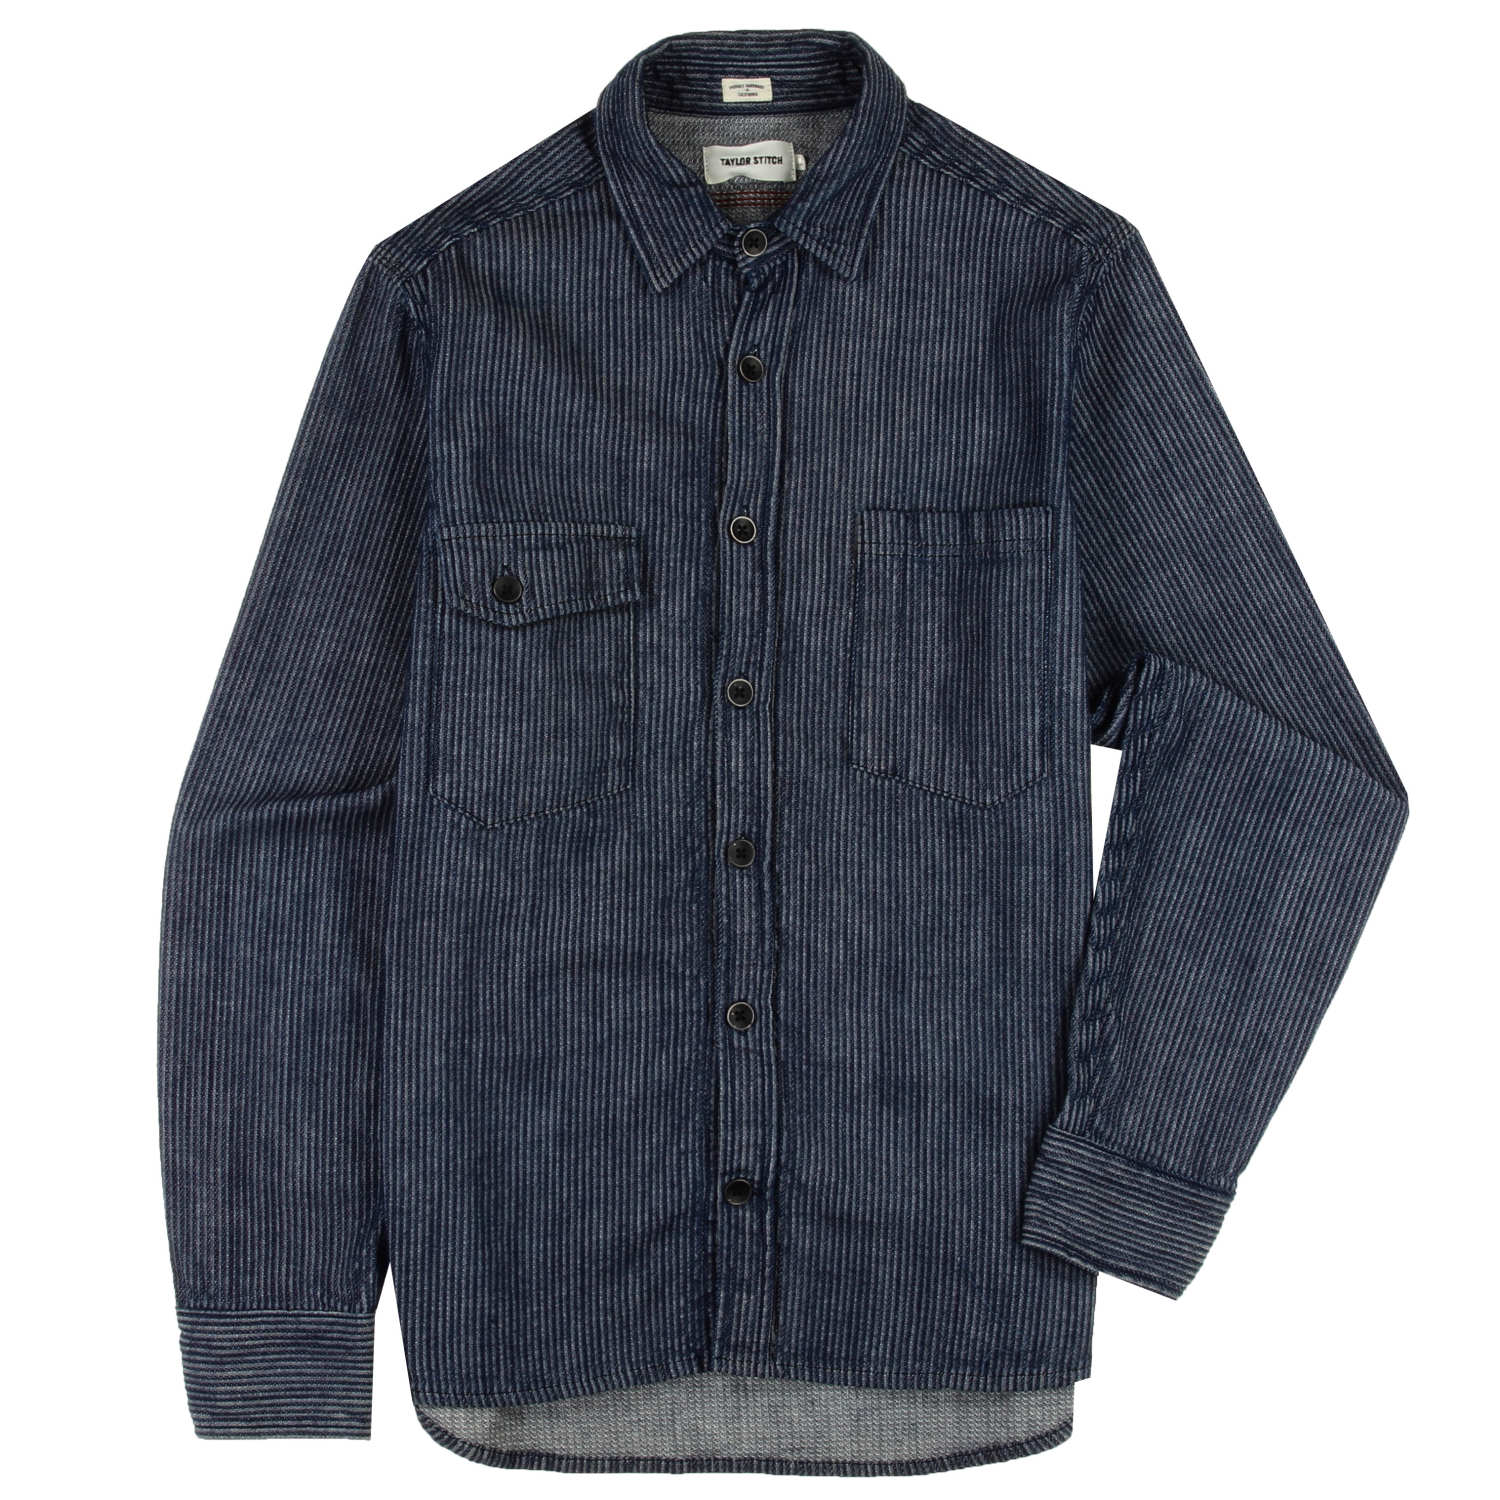 Vintage - The Utility Shirt